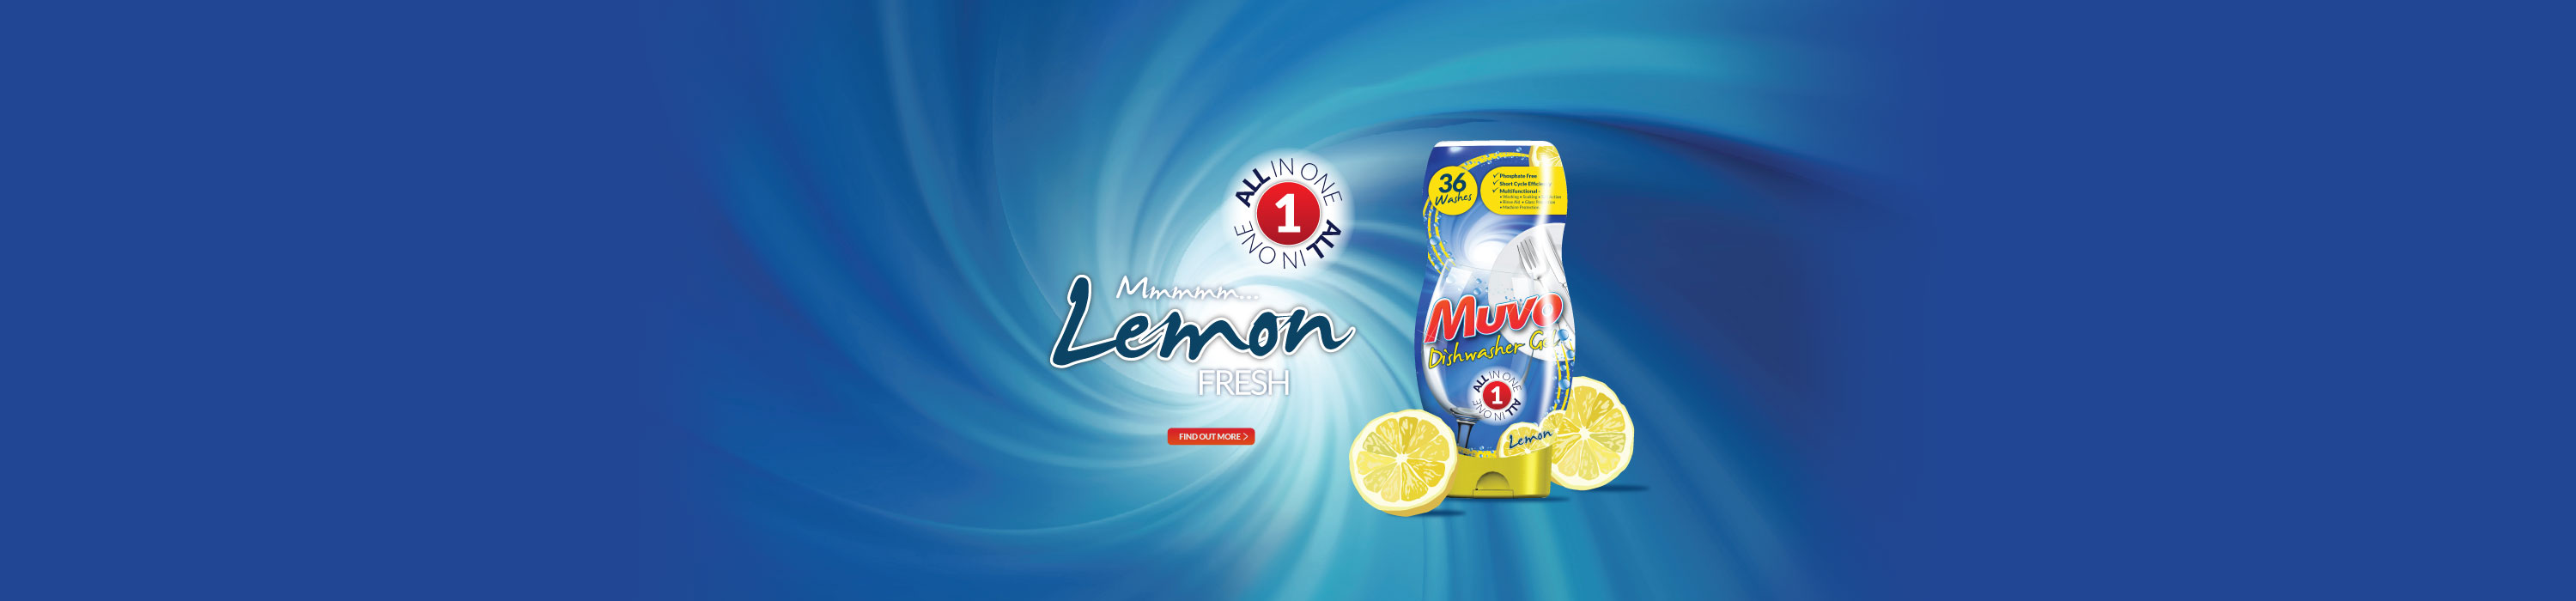 Lemon fresh